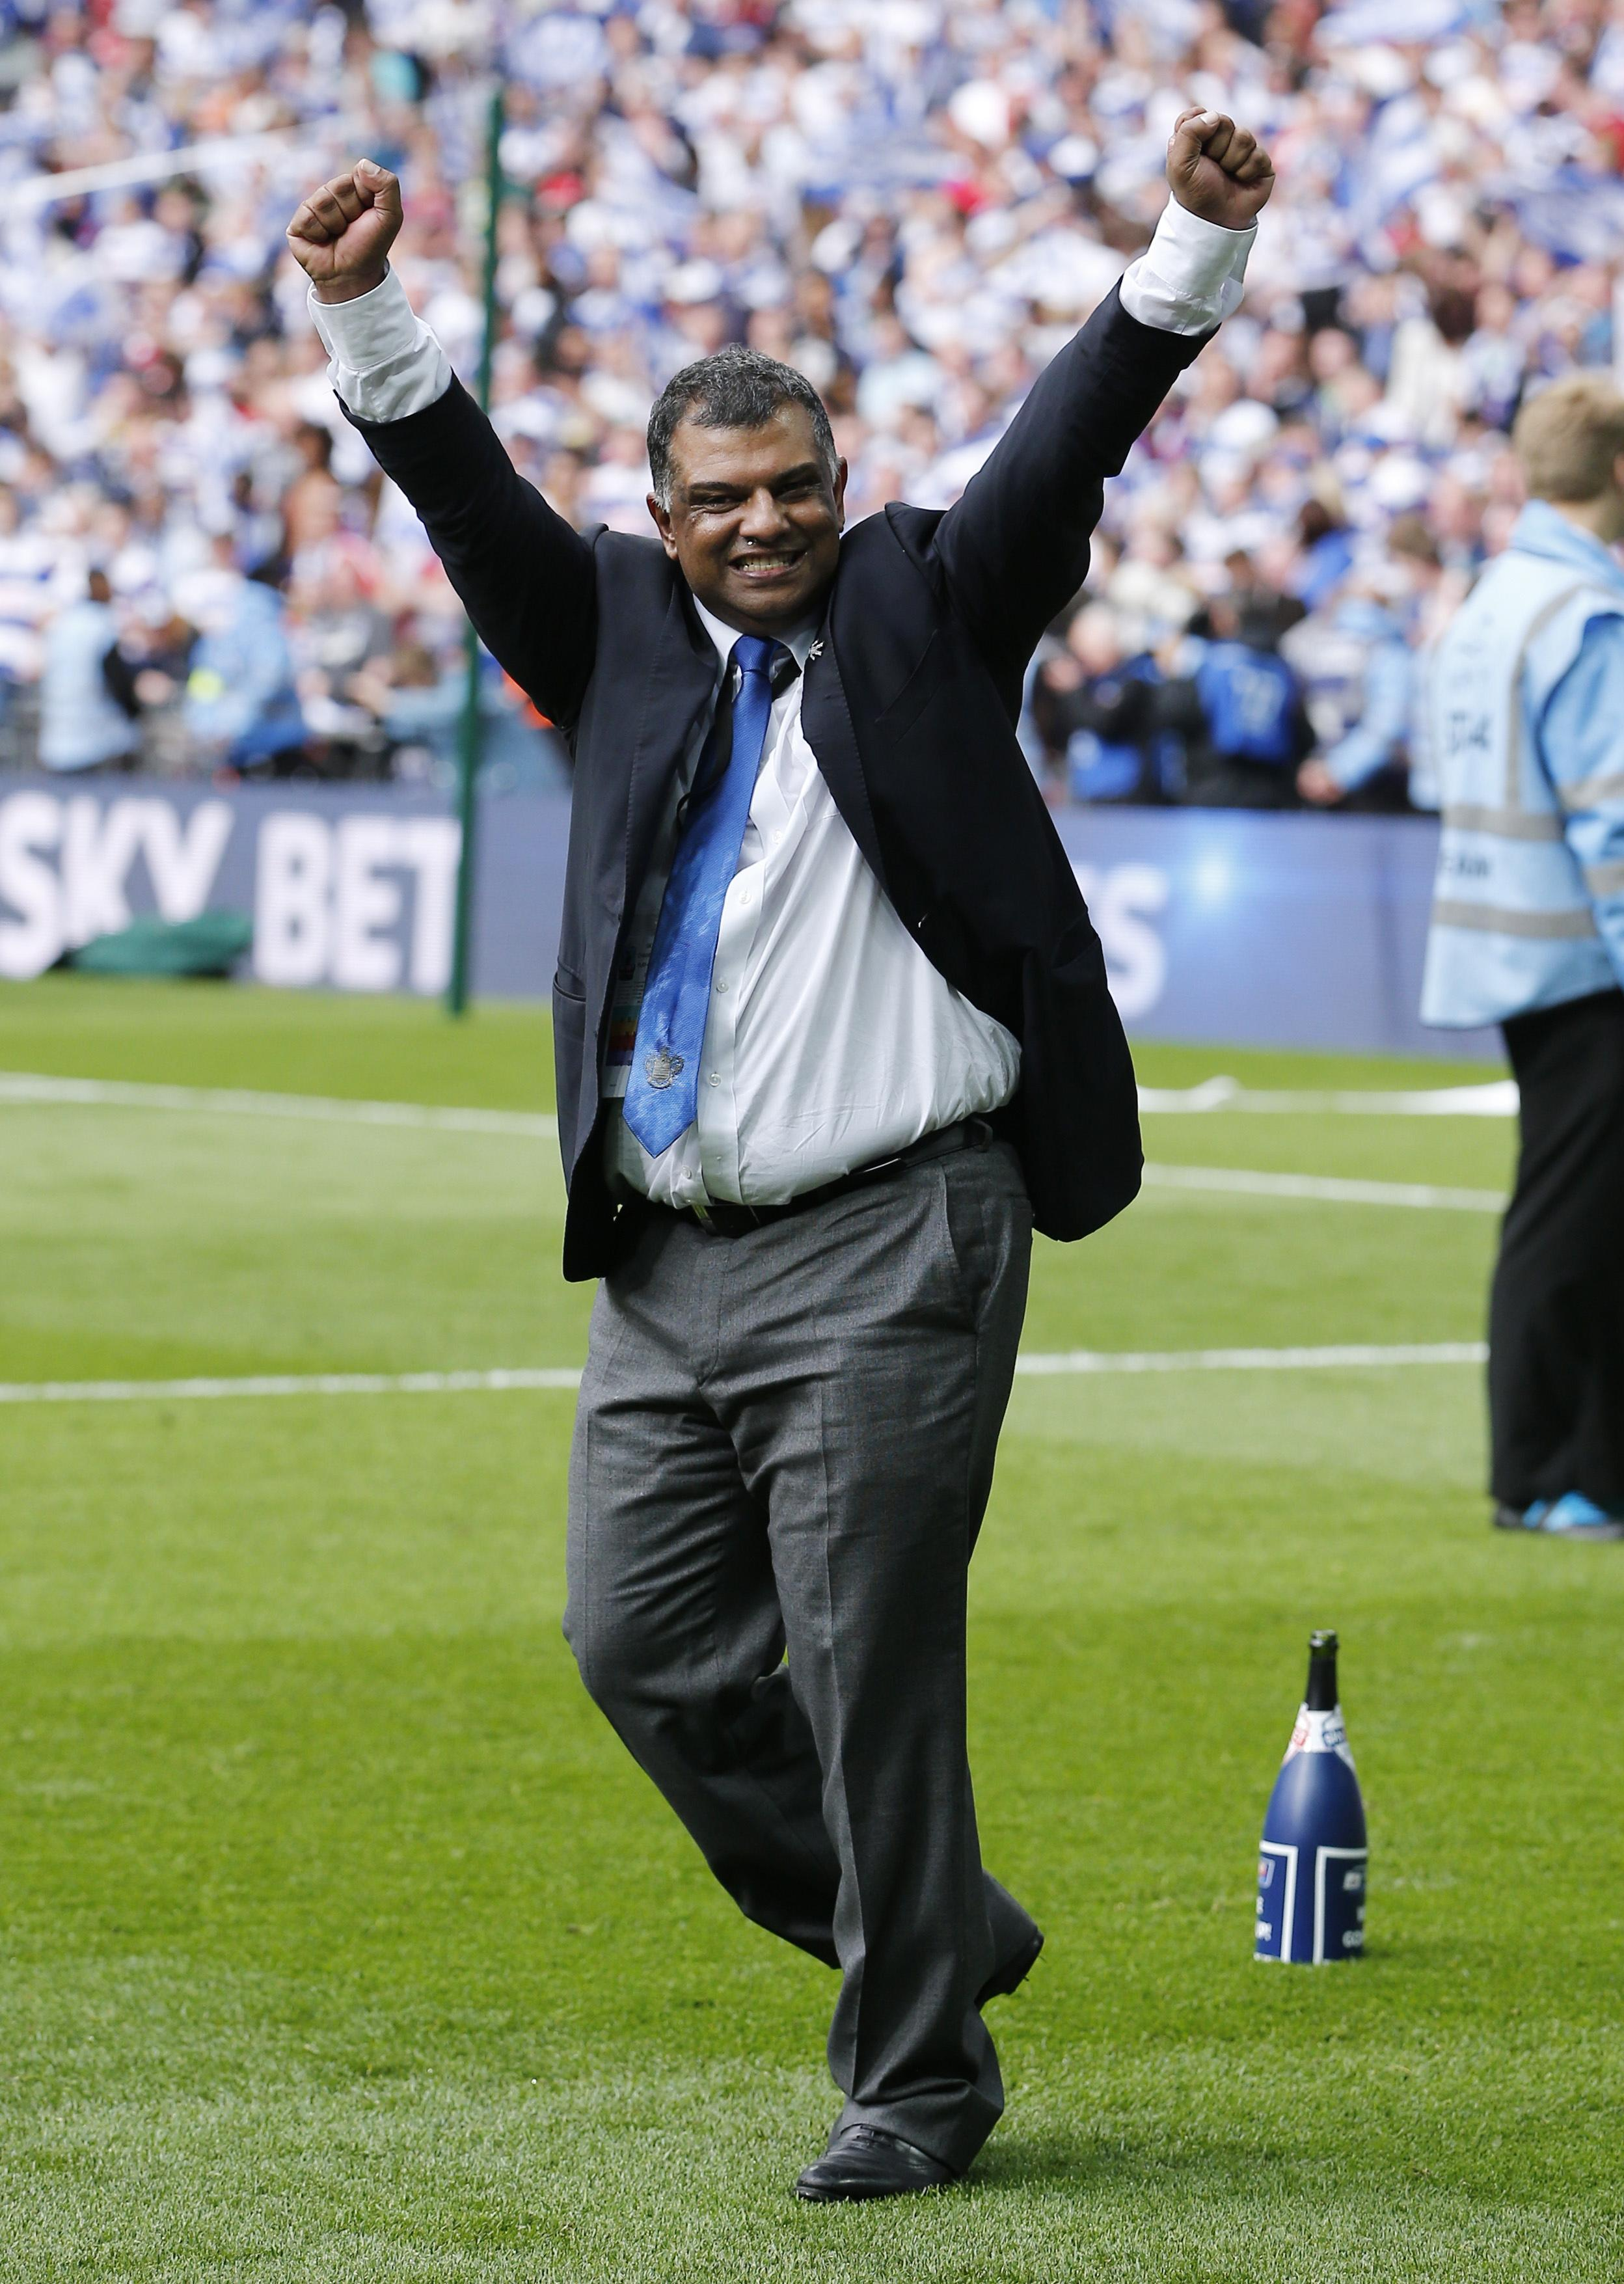 QPR are struggling after the foolish and lavish spending by Tony Fernandes